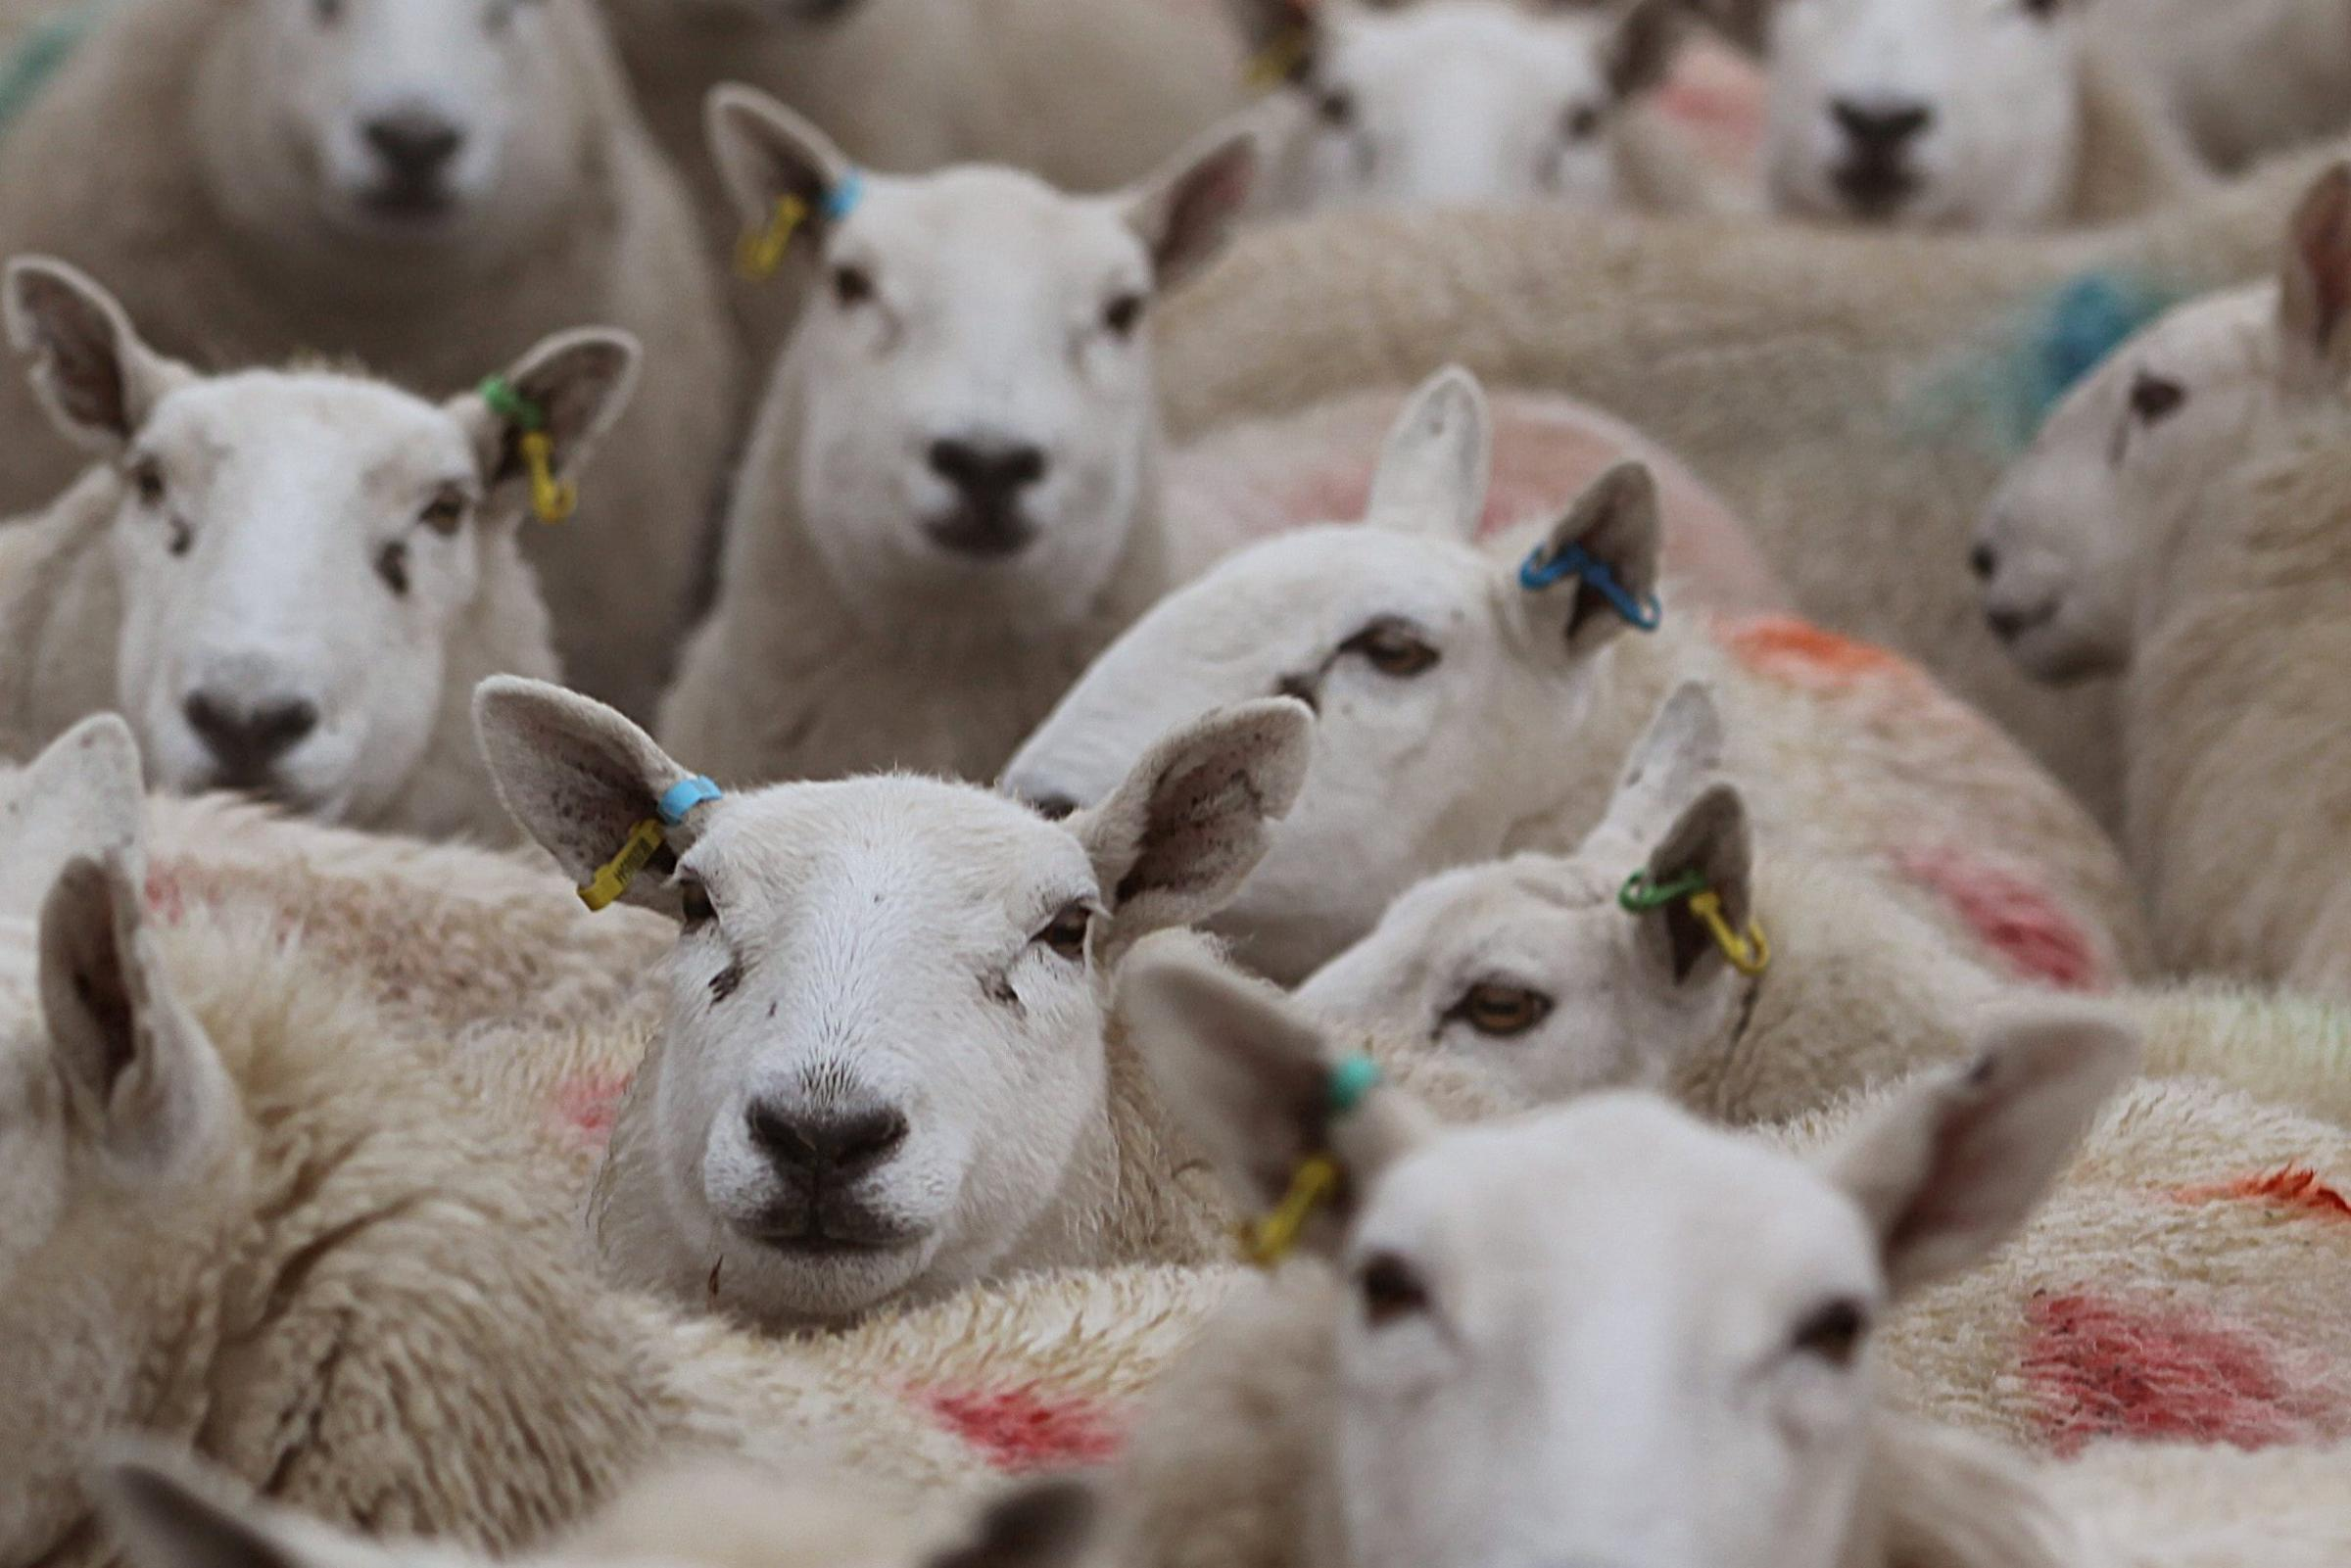 New research shows no advantage to blanket worming ewes at lambing time